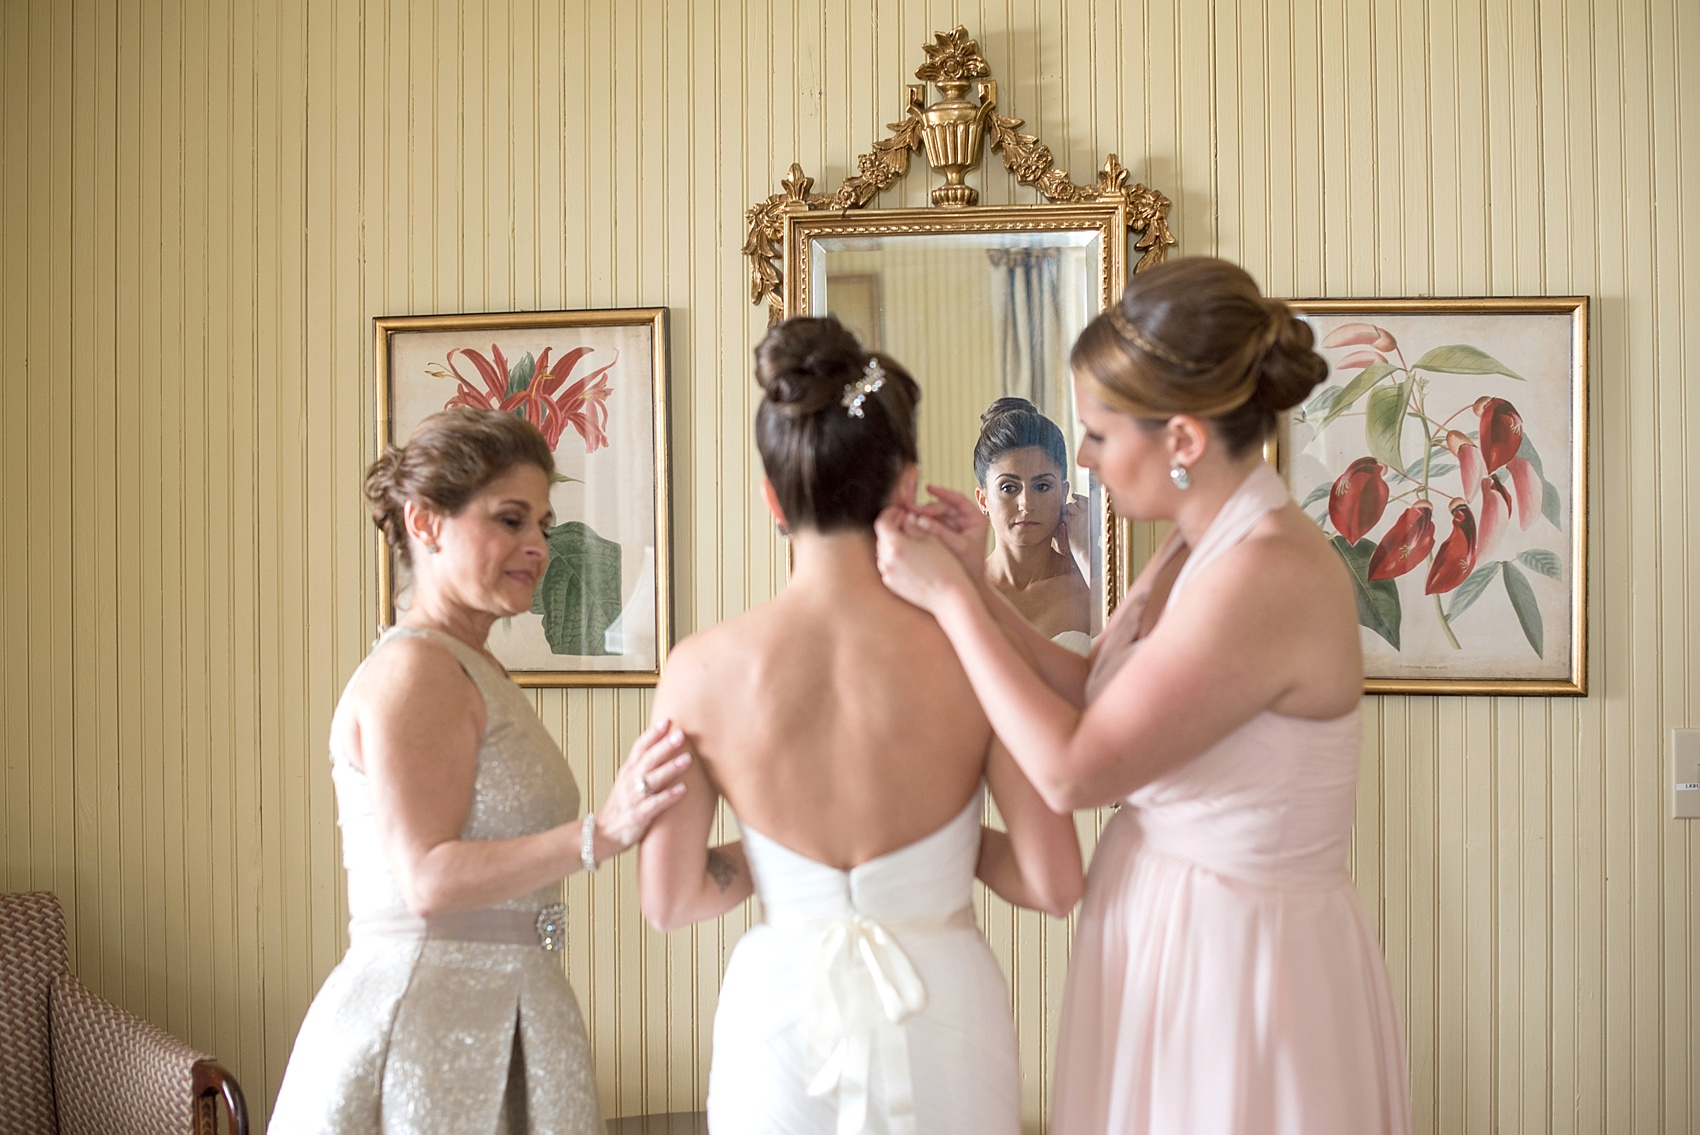 Southern wedding photos by Mikkel Paige for a Hilton Head, Haig Point, South Carolina wedding. The bride gets ready with her mom and maid of honor.